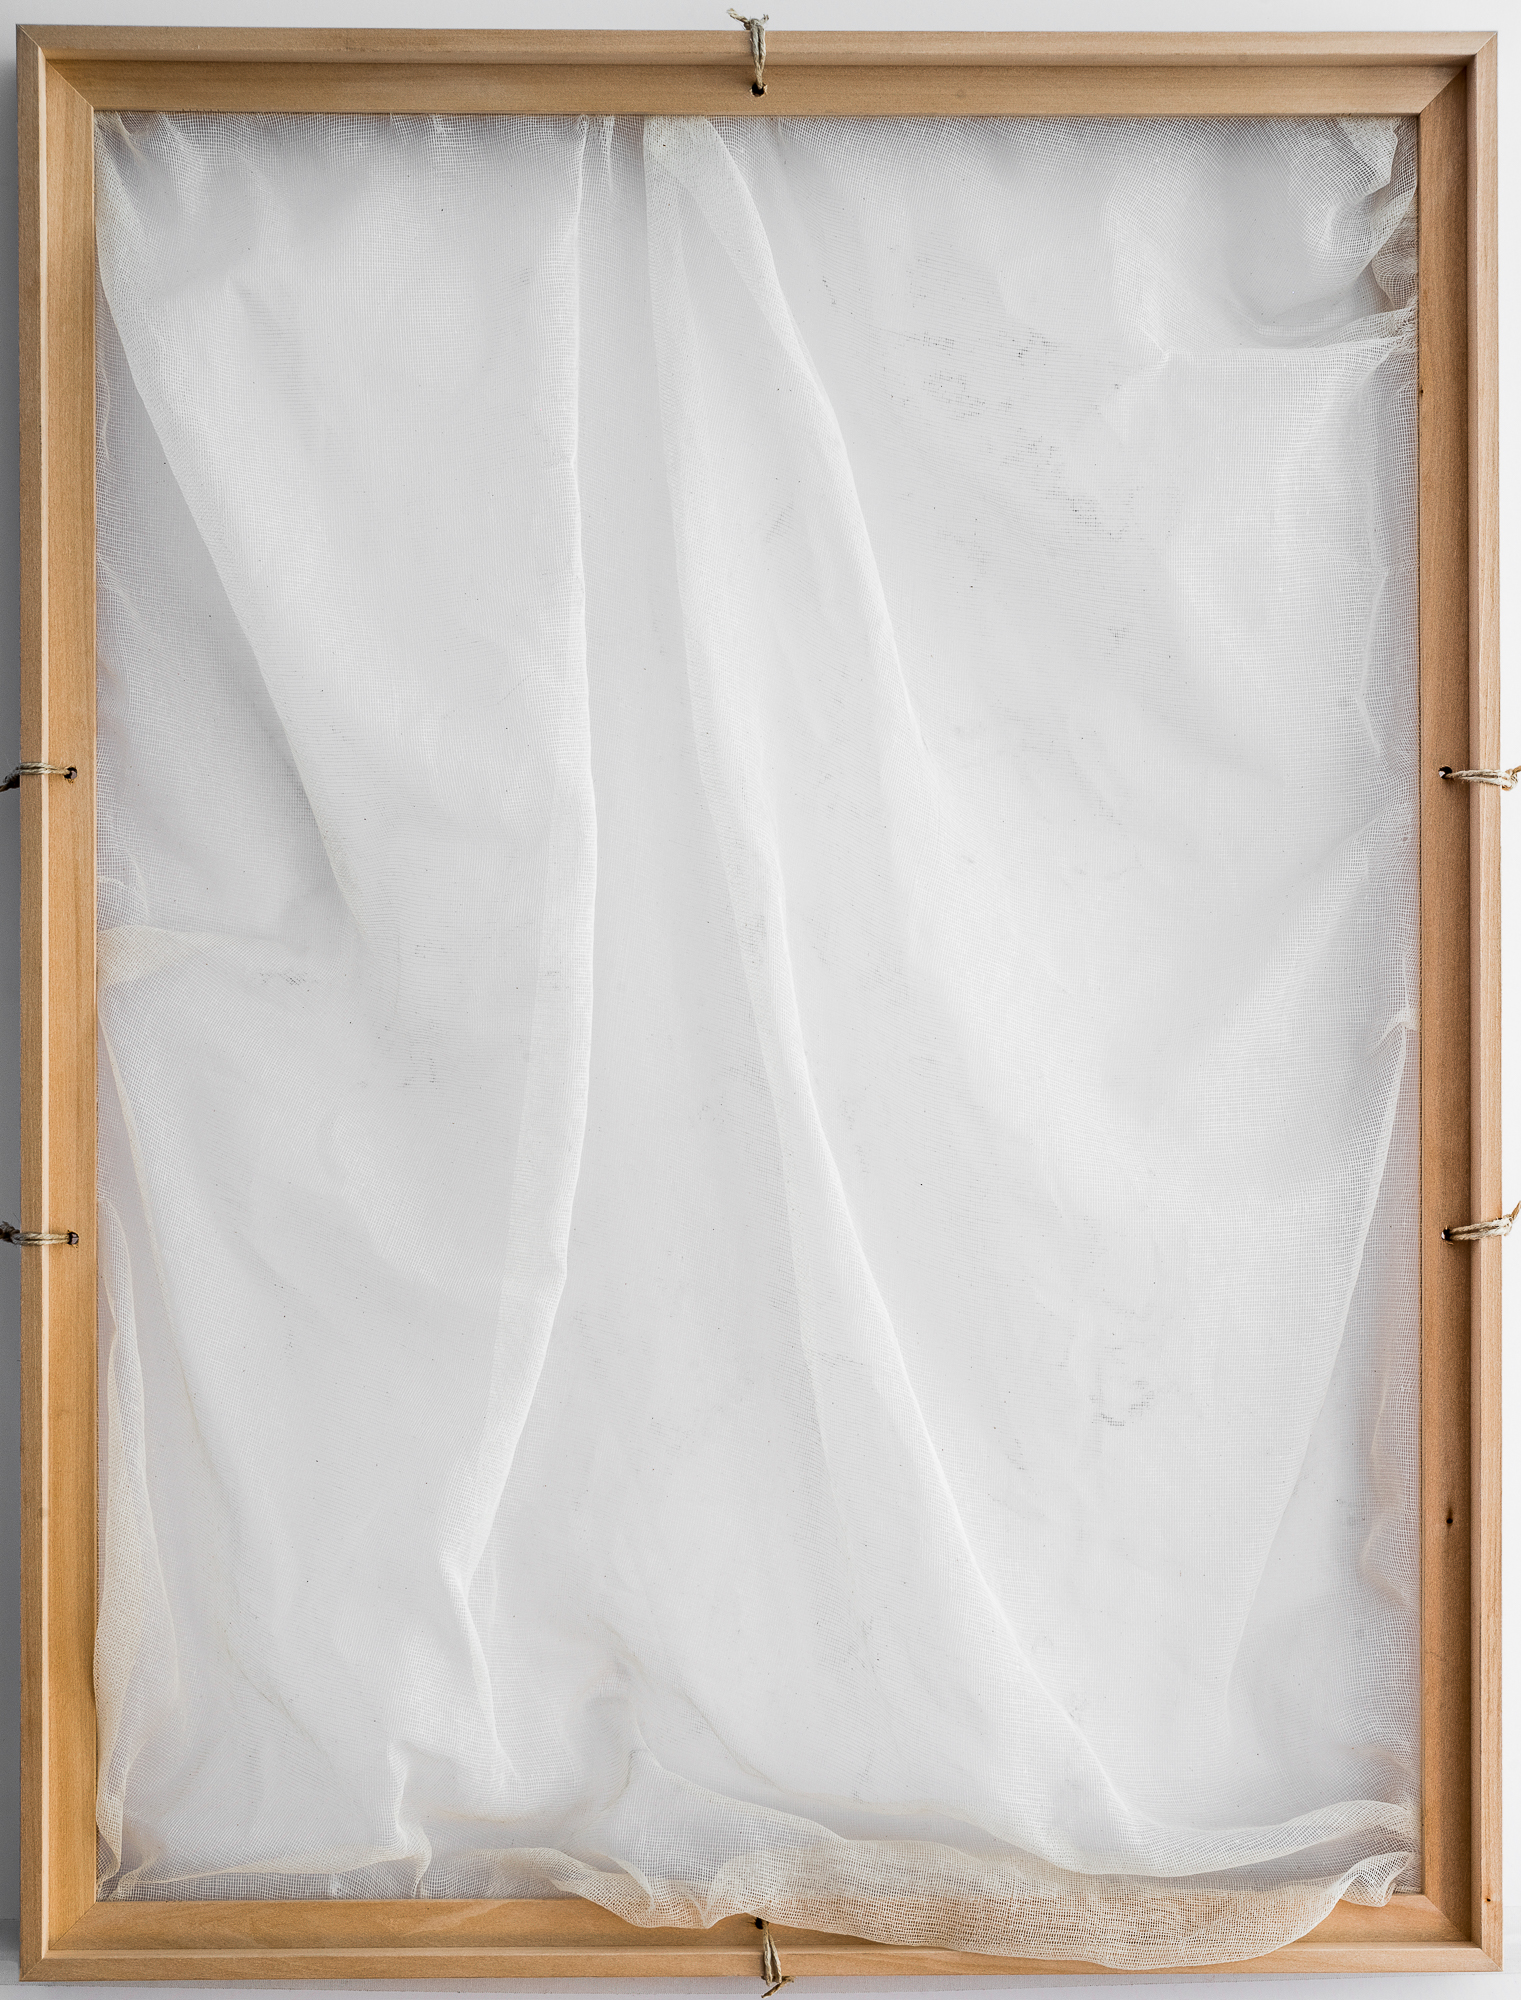 Moment Between Thoughts / Part VI   ,   2016 Gauze, wooden frame structure 84 x 64 cm (33 x 25 in)